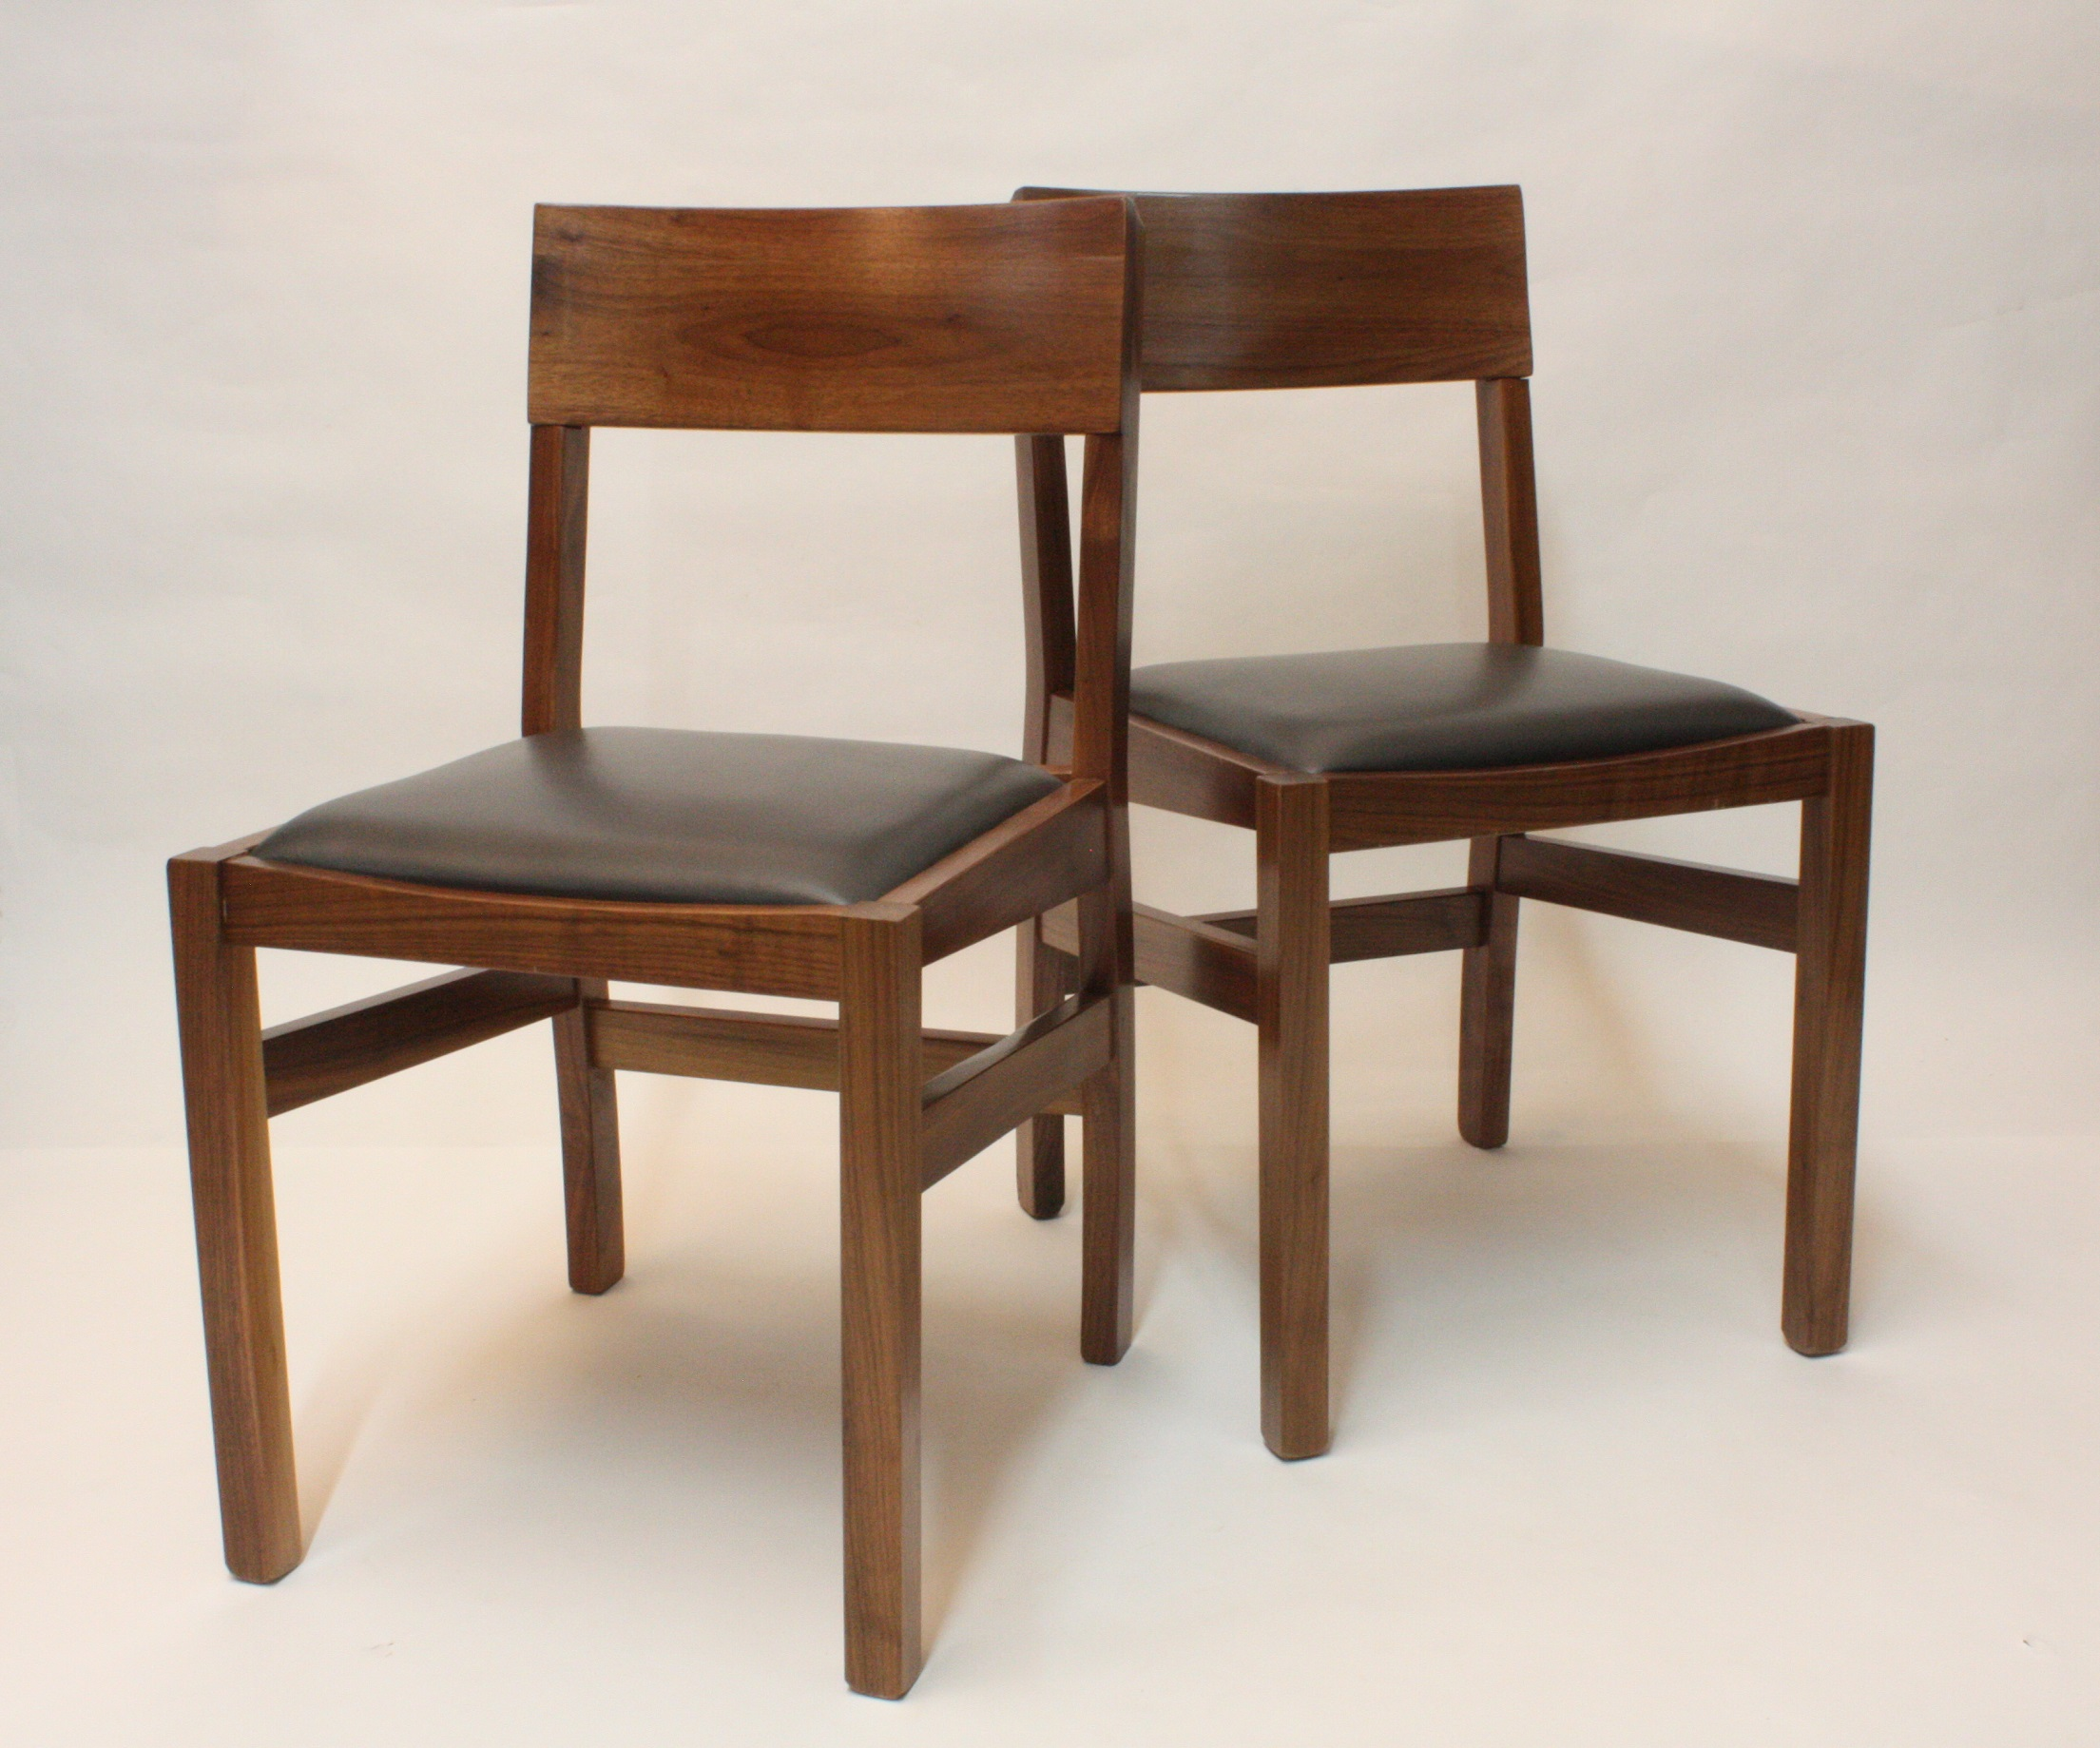 Walnut Dining Chair Angel Walnut Dining Chair